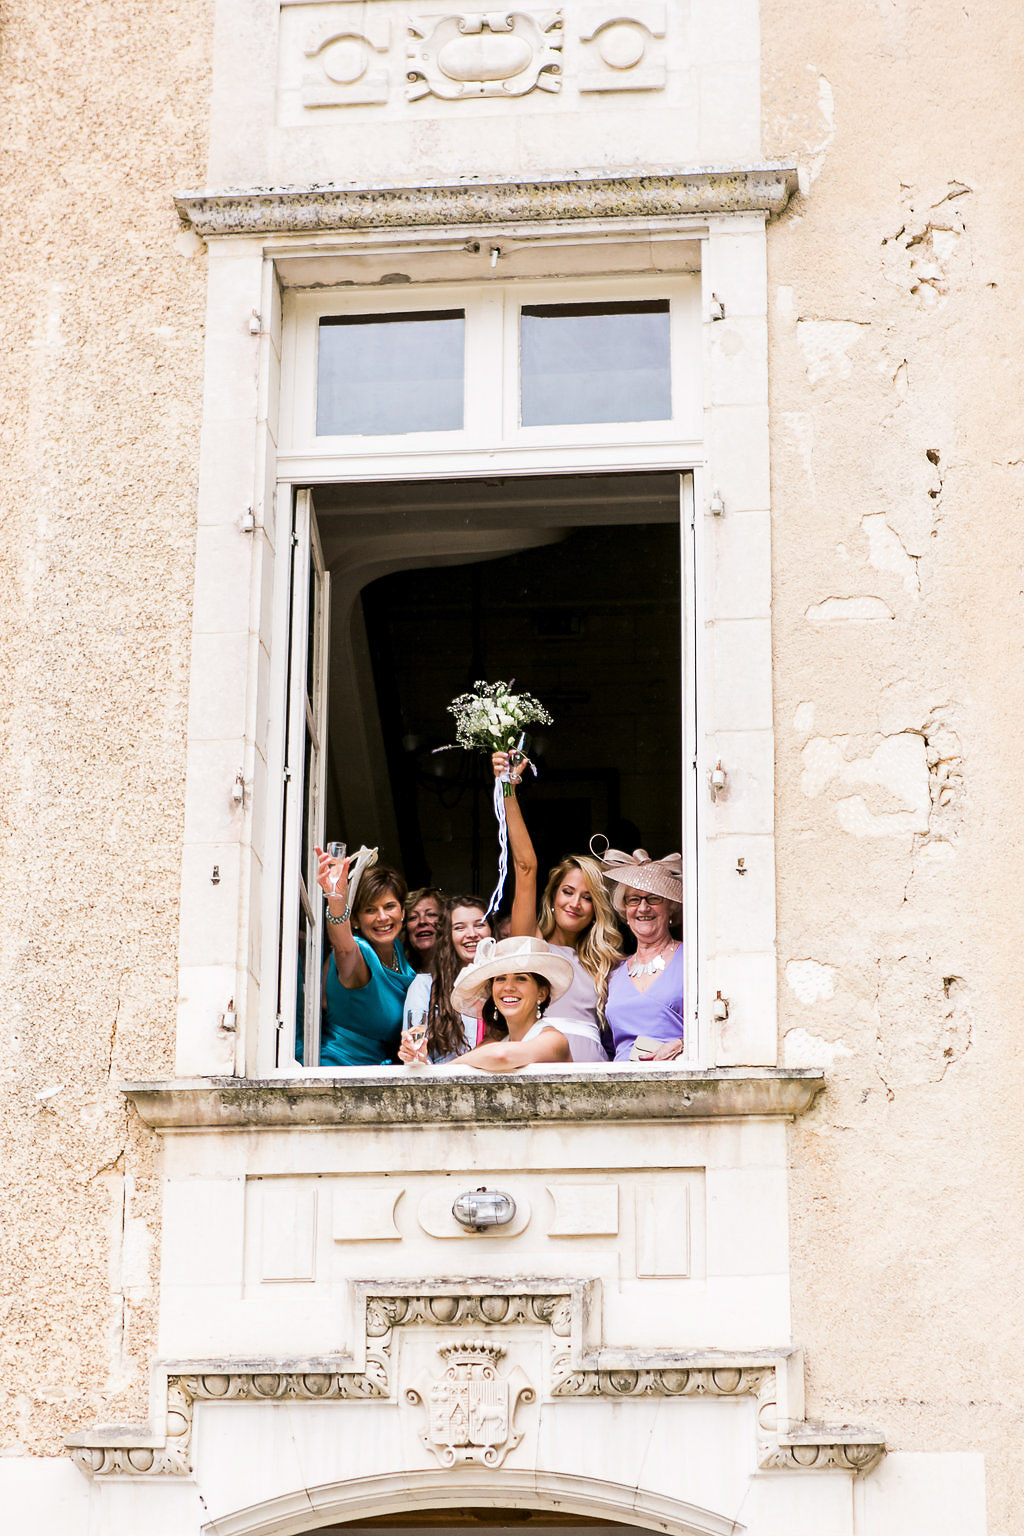 Castle France wedding - Chateau Saint Julien l'Ars Loire Valley